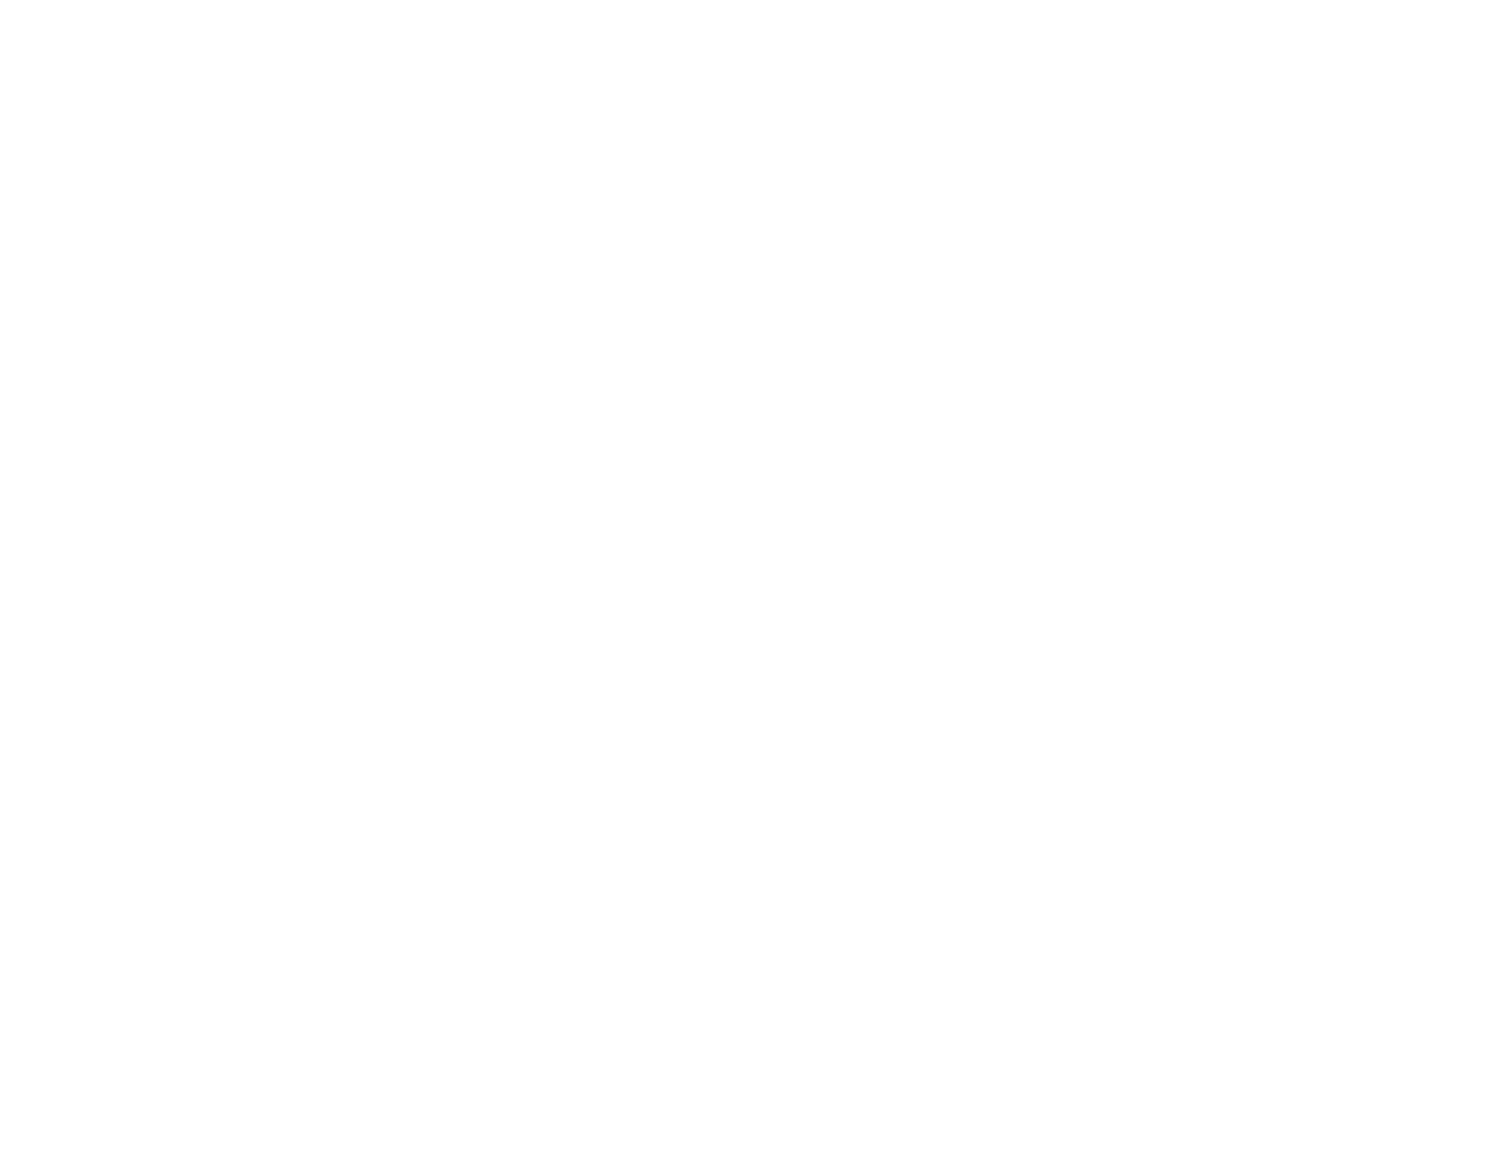 Western States Conference on Suicide